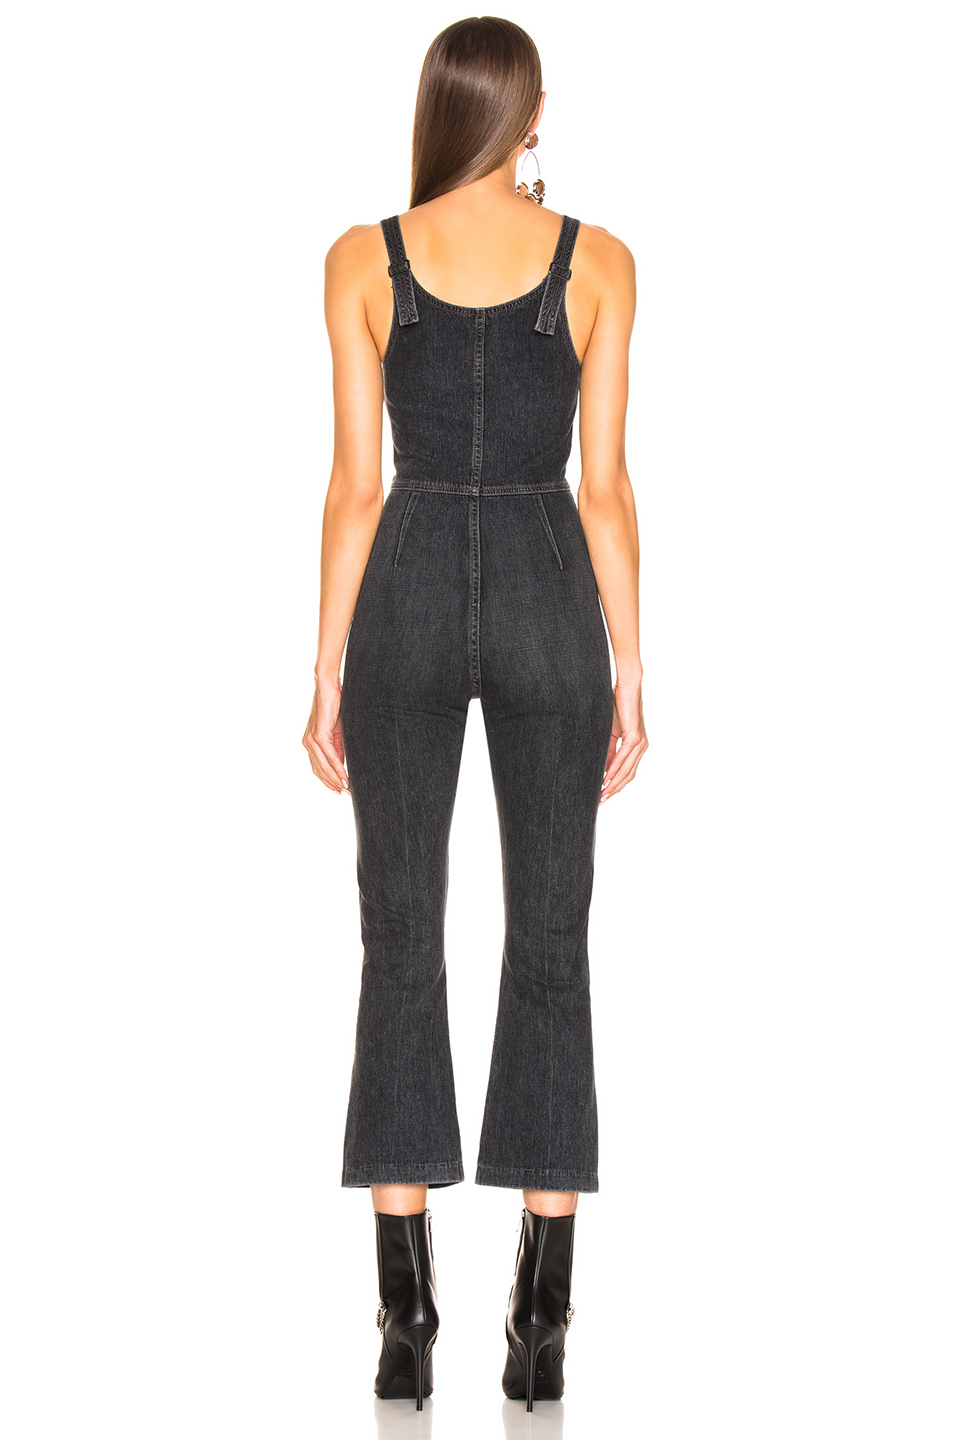 328f41fc6c9 Buy Original JEAN ATELIER Star Jumpsuit at Indonesia